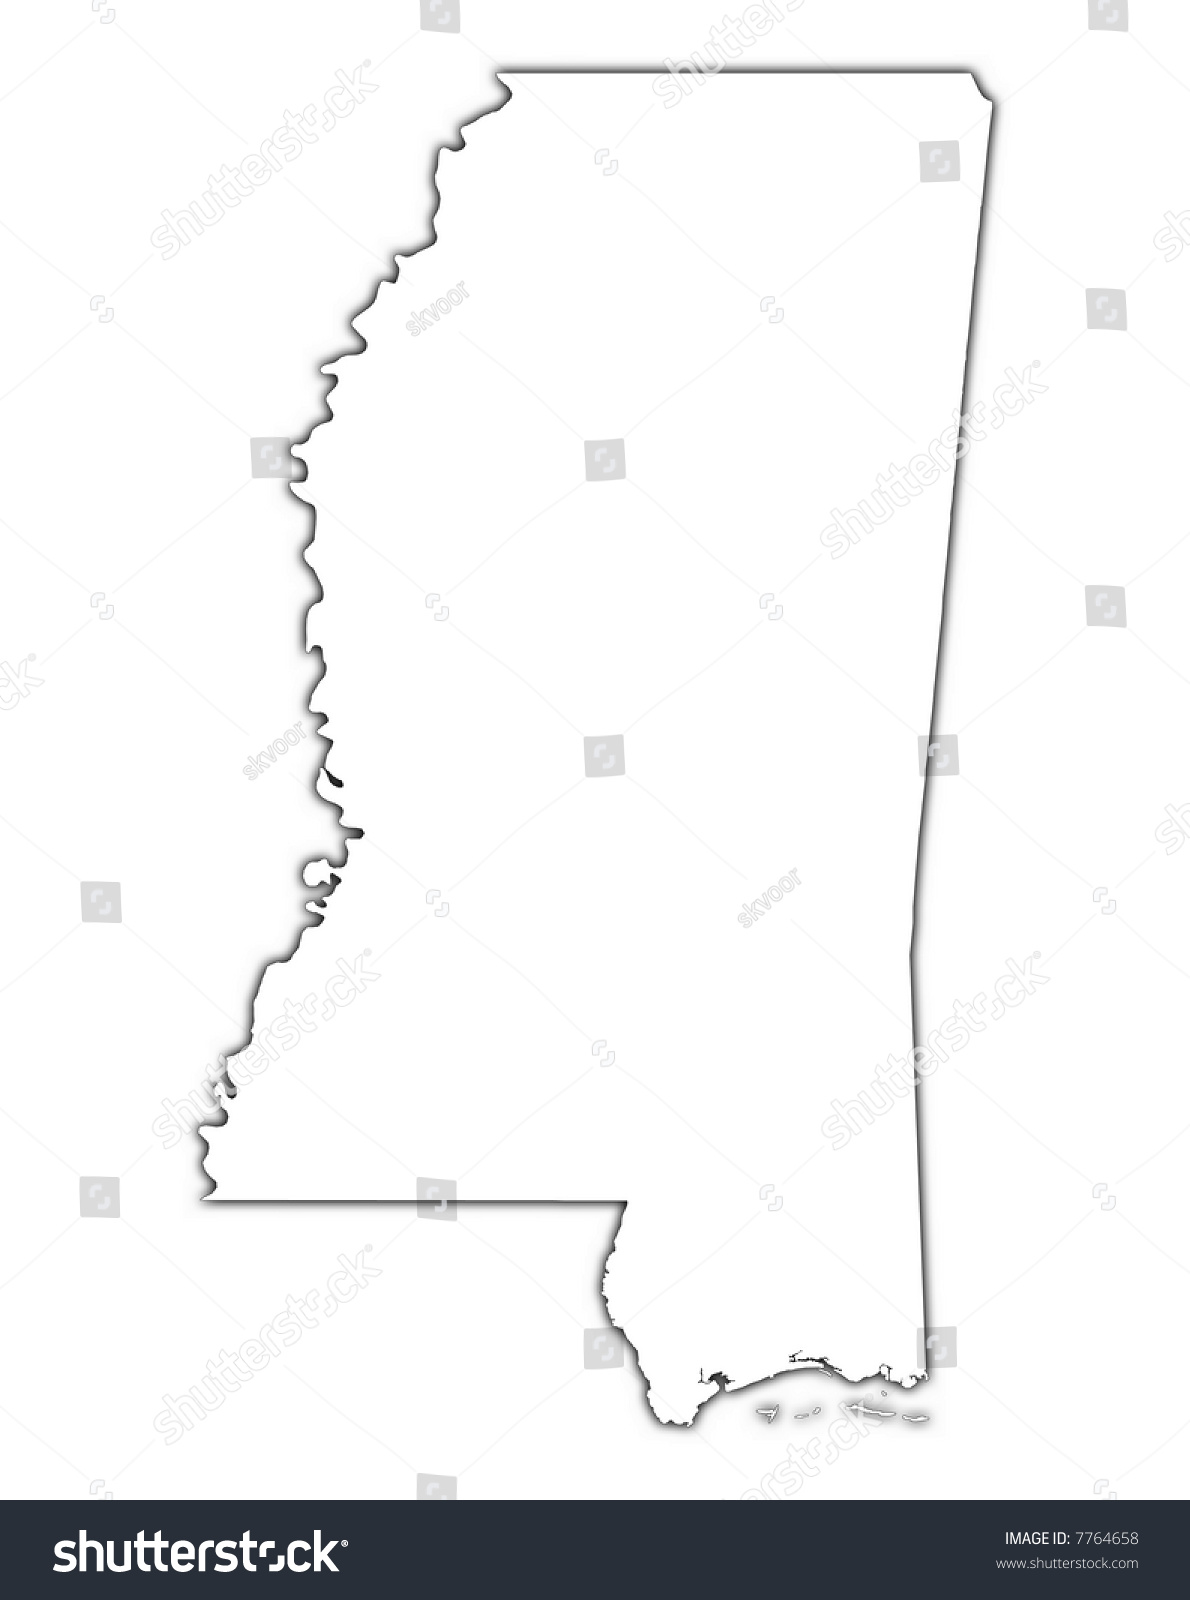 Mississippi State Map Outline.Oxford Mississippi State Map Outline